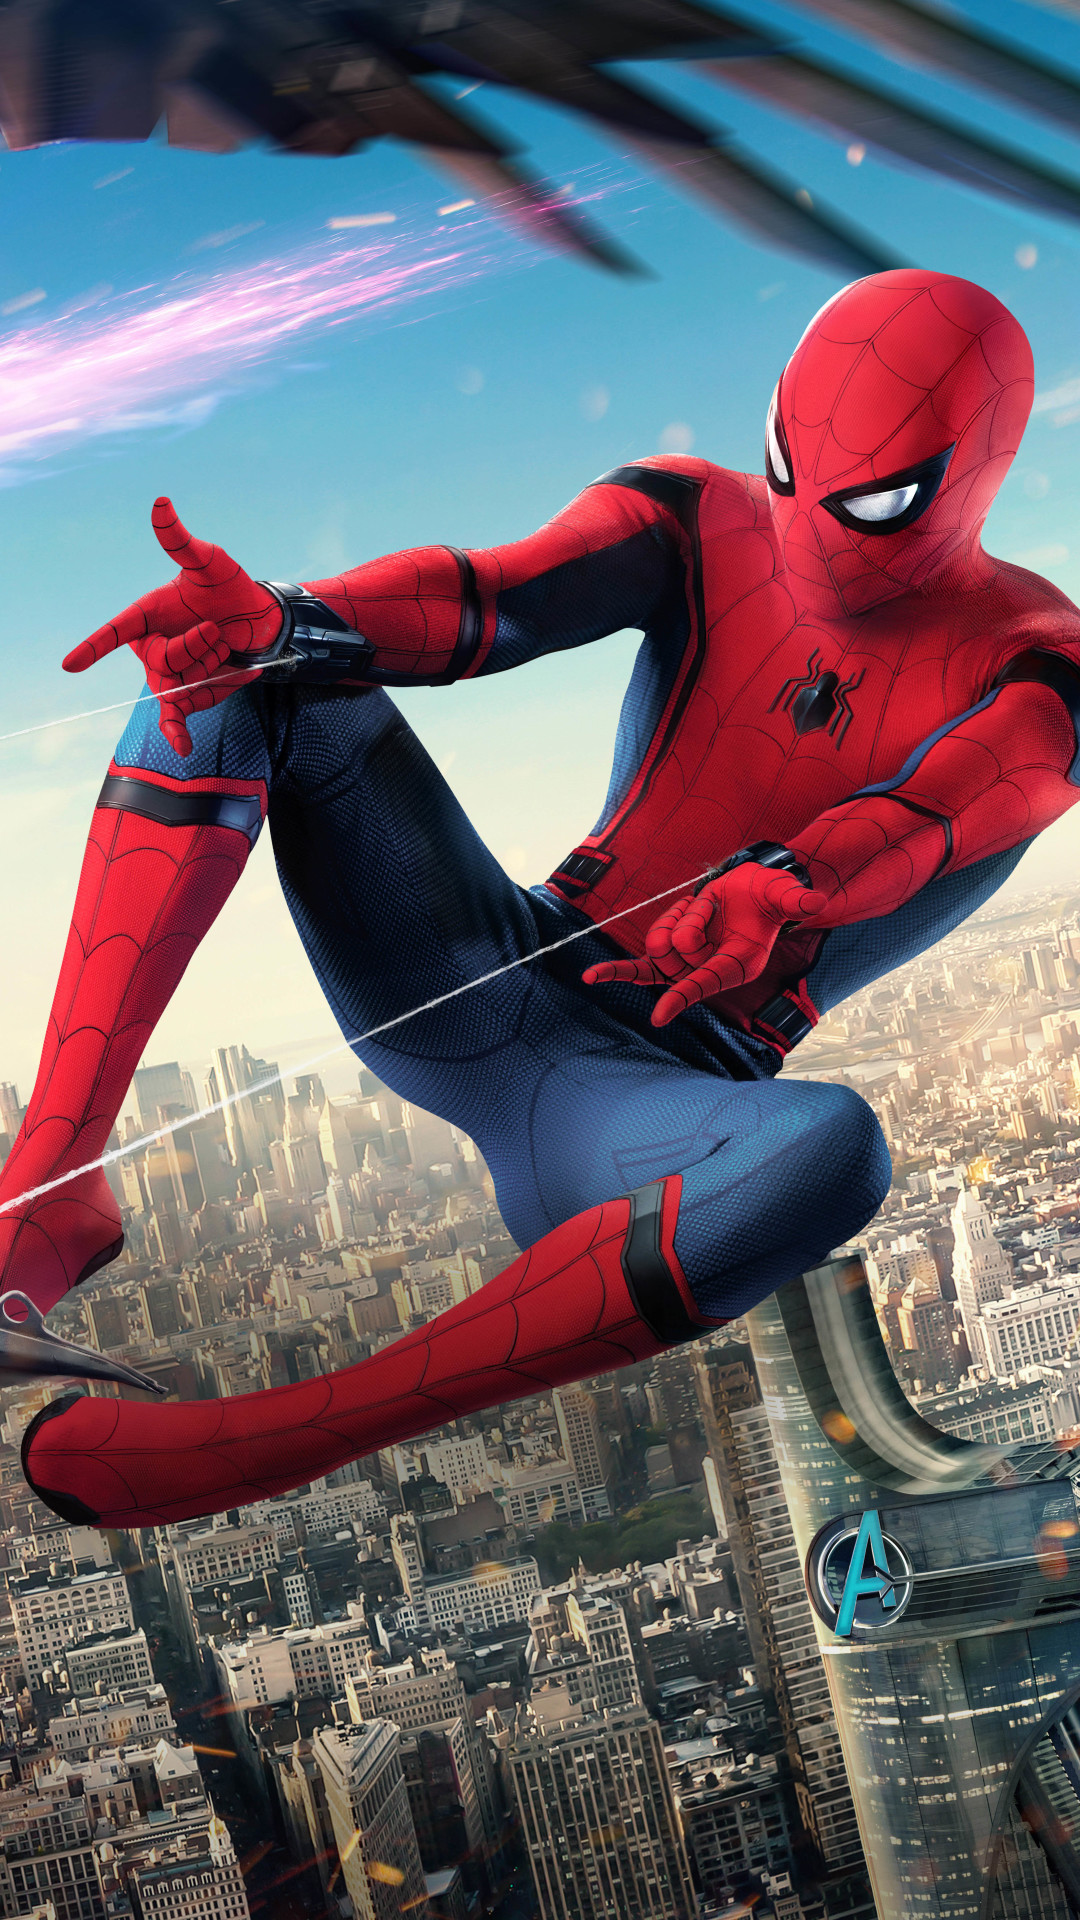 Spider man homecoming wallpapers - Spiderman iphone x wallpaper ...